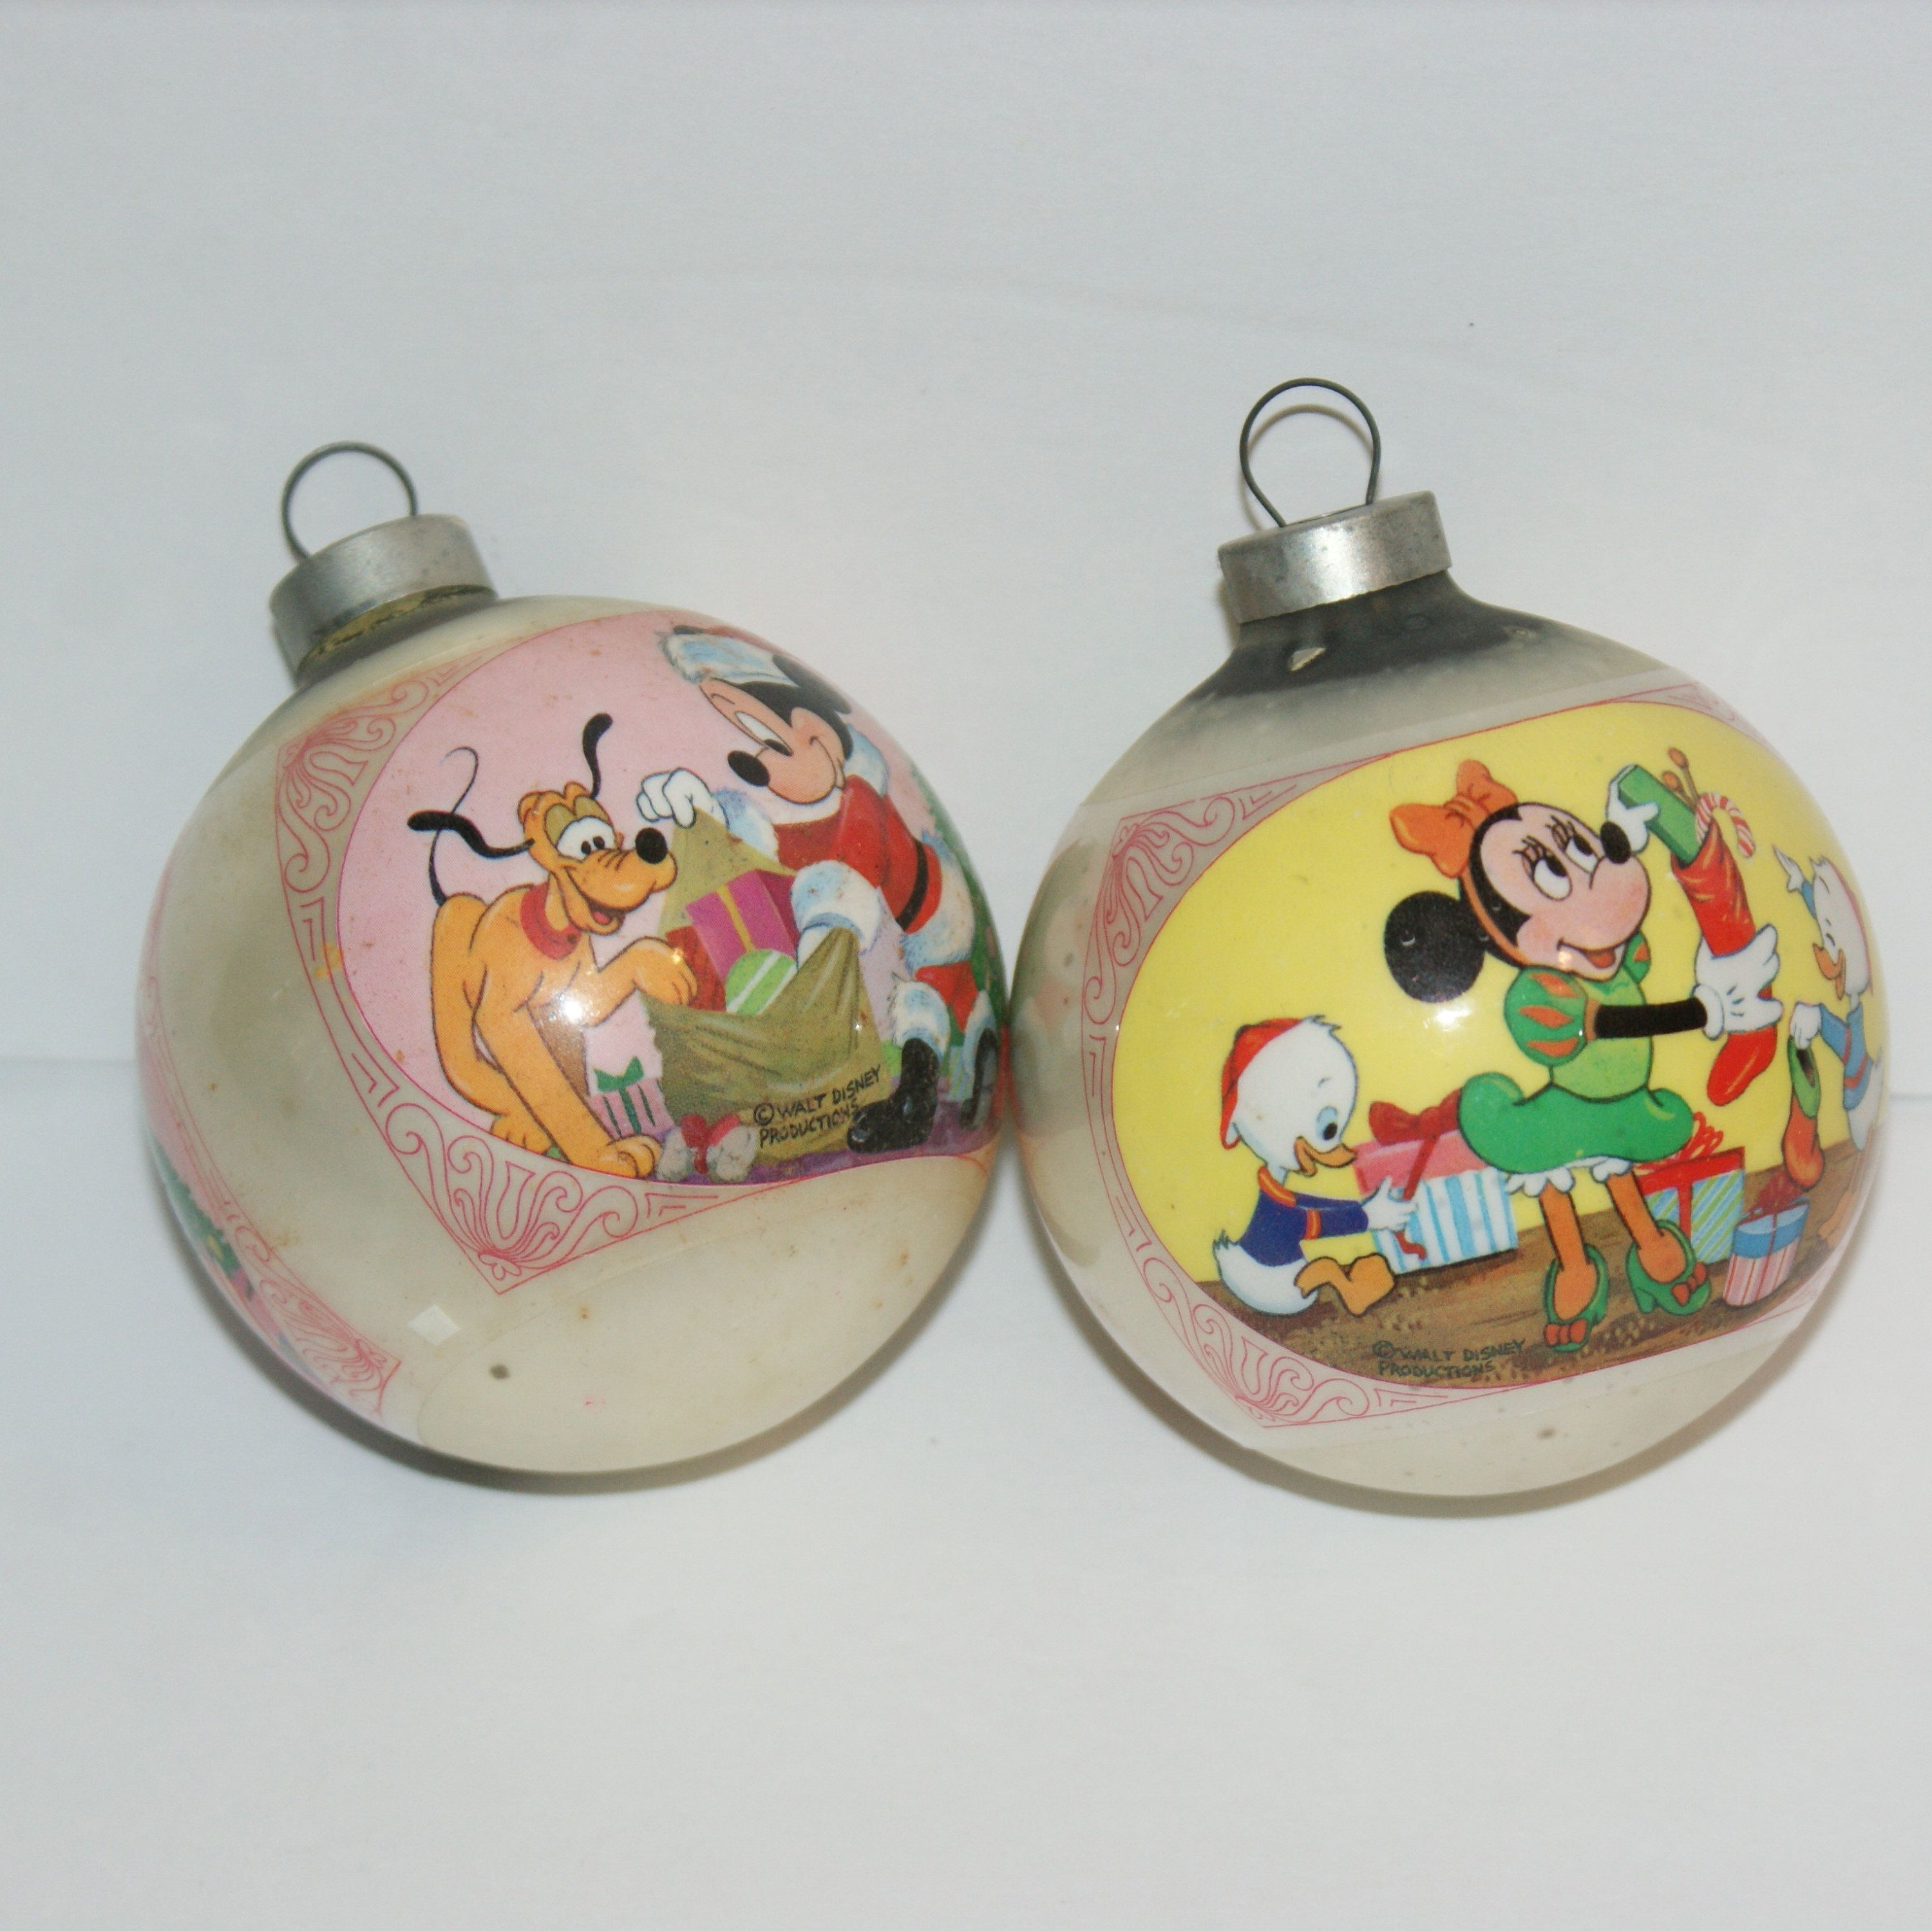 Disney Christmas Ornaments Set Of 2 Mickey Mouse Minnie Glass Etsy In 2020 Disney Christmas Ornaments Disney Christmas Christmas Ornament Sets